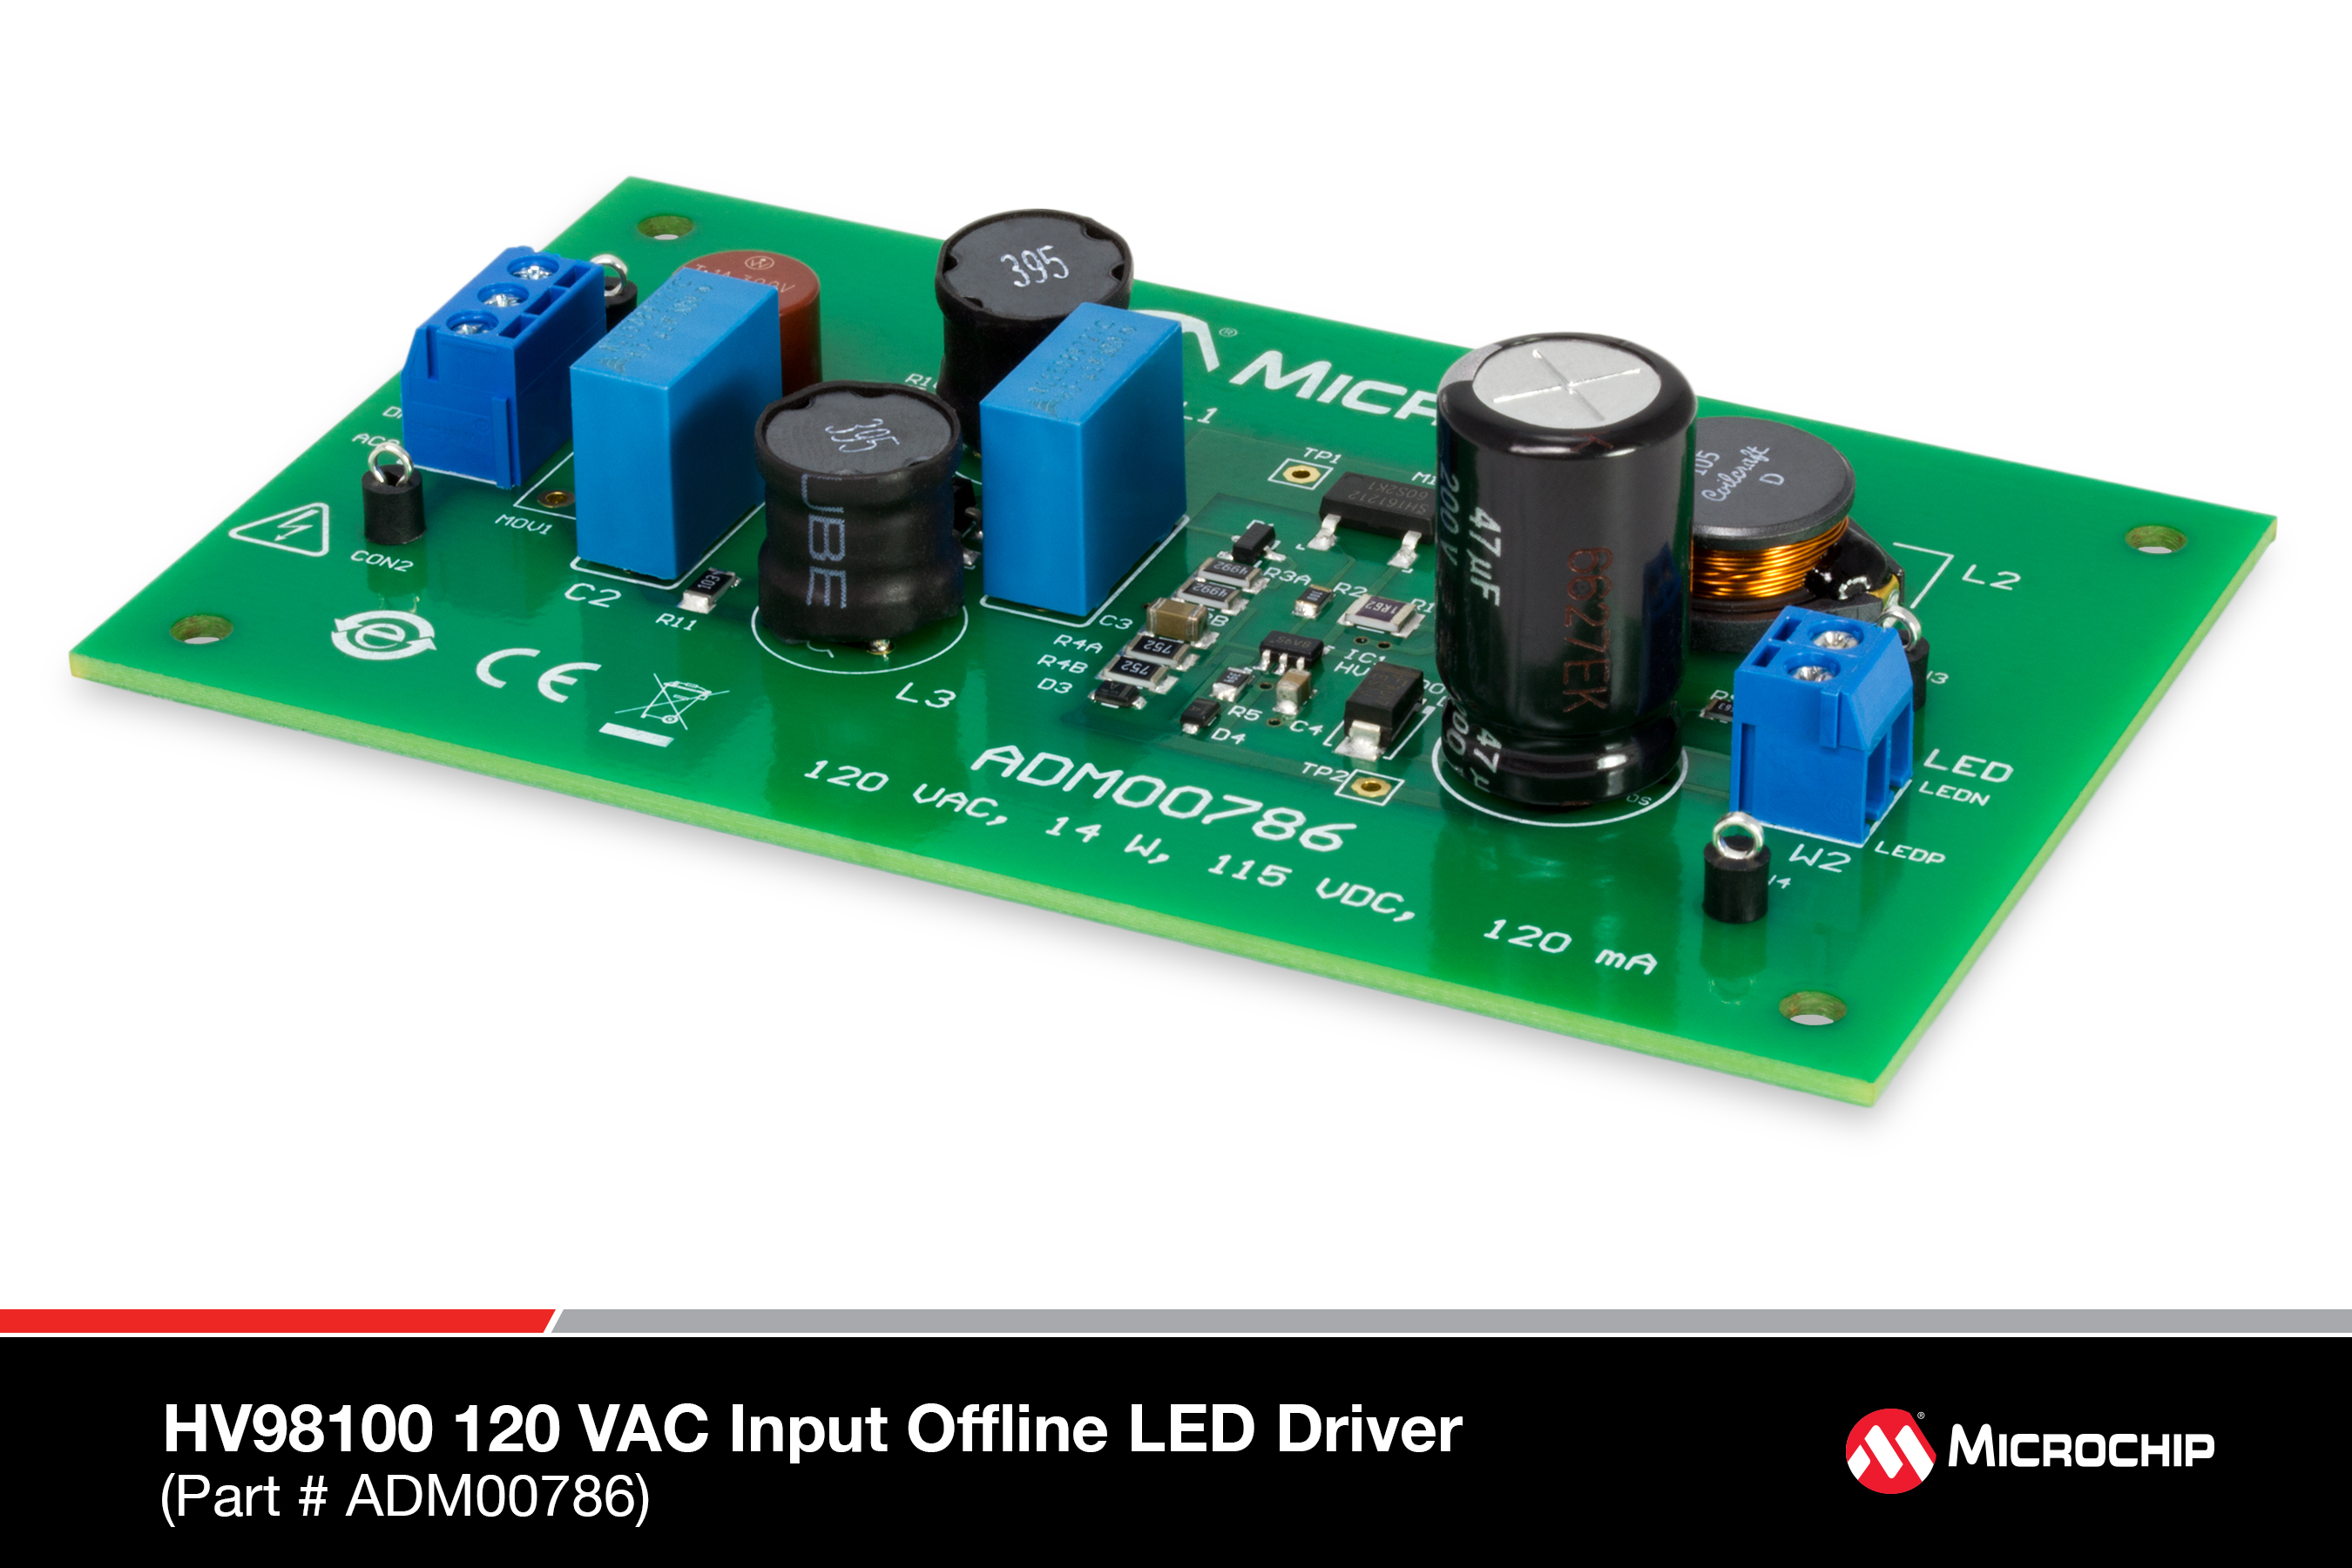 Development Tools Led Bulb Driver Circuit Diagram 12v For The Hv98101 230vac Off Line Evaluation Board Is Designed To Demonstrate Performance Of Microchip Technology Incs Ic